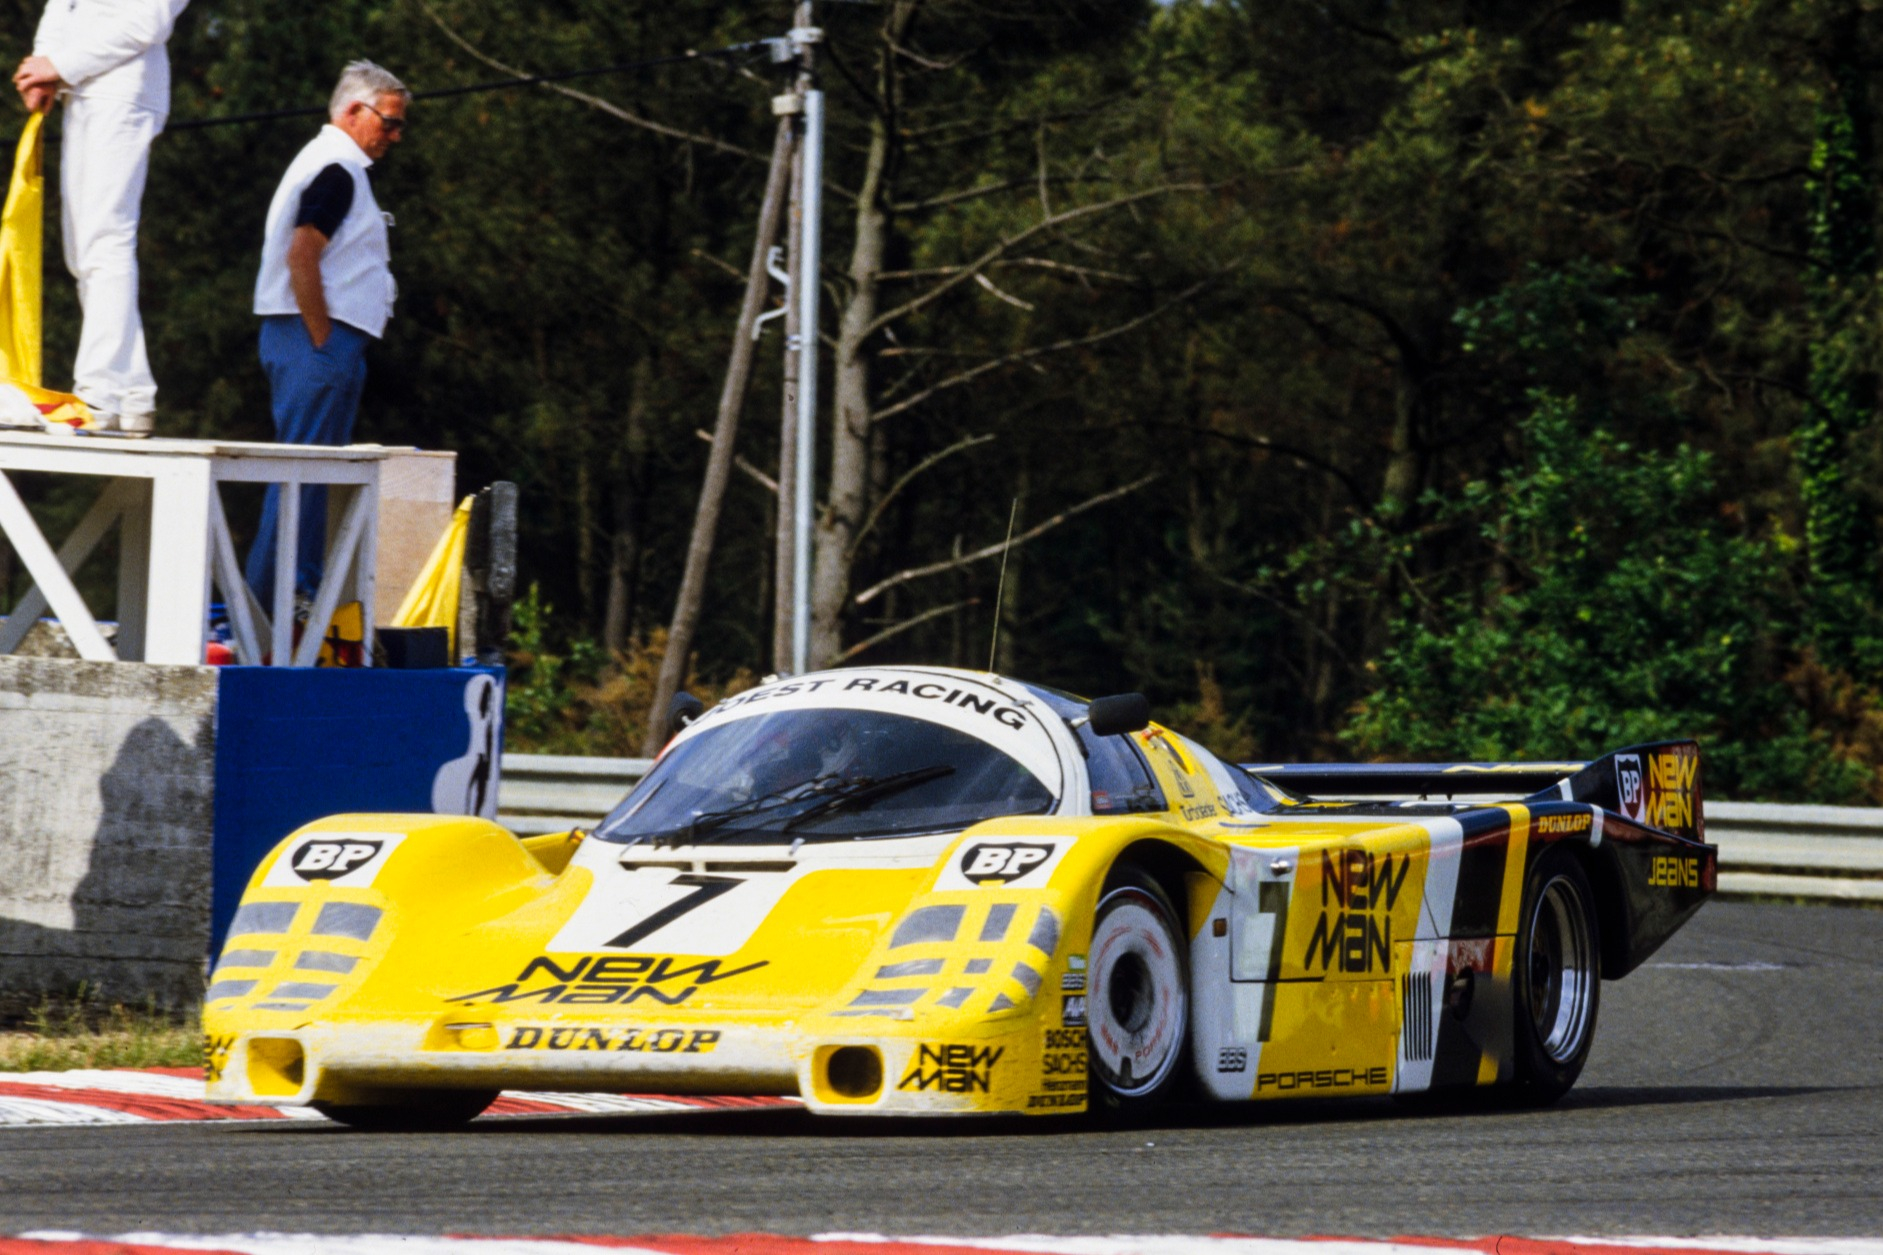 'Winter' drove minimal laps to claim victory in 1985 alongside team-mates Ludwig and Barilla in Joest 956